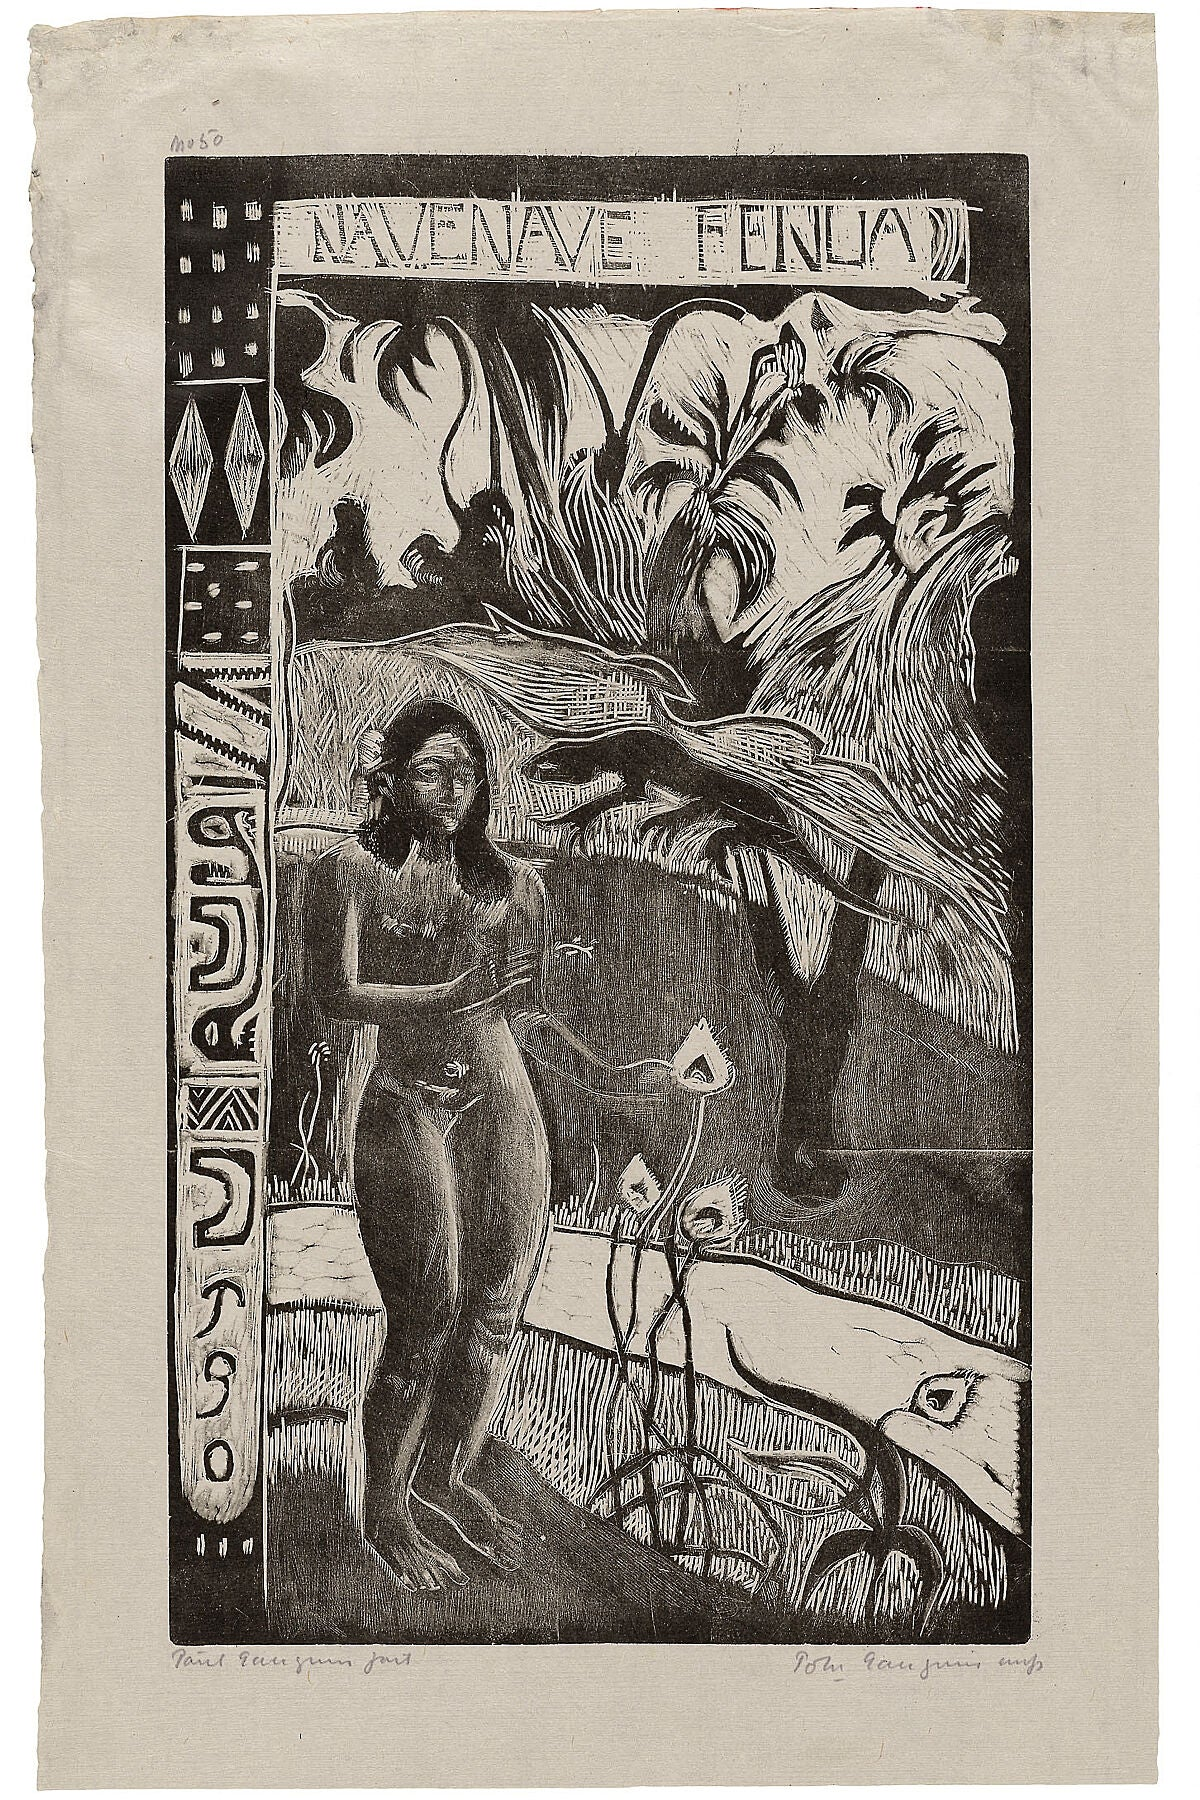 Nave nave fenua (Delightful Land), from the Noa Noa Suite Date- 1893_94, printed 1921 Paul Gauguin